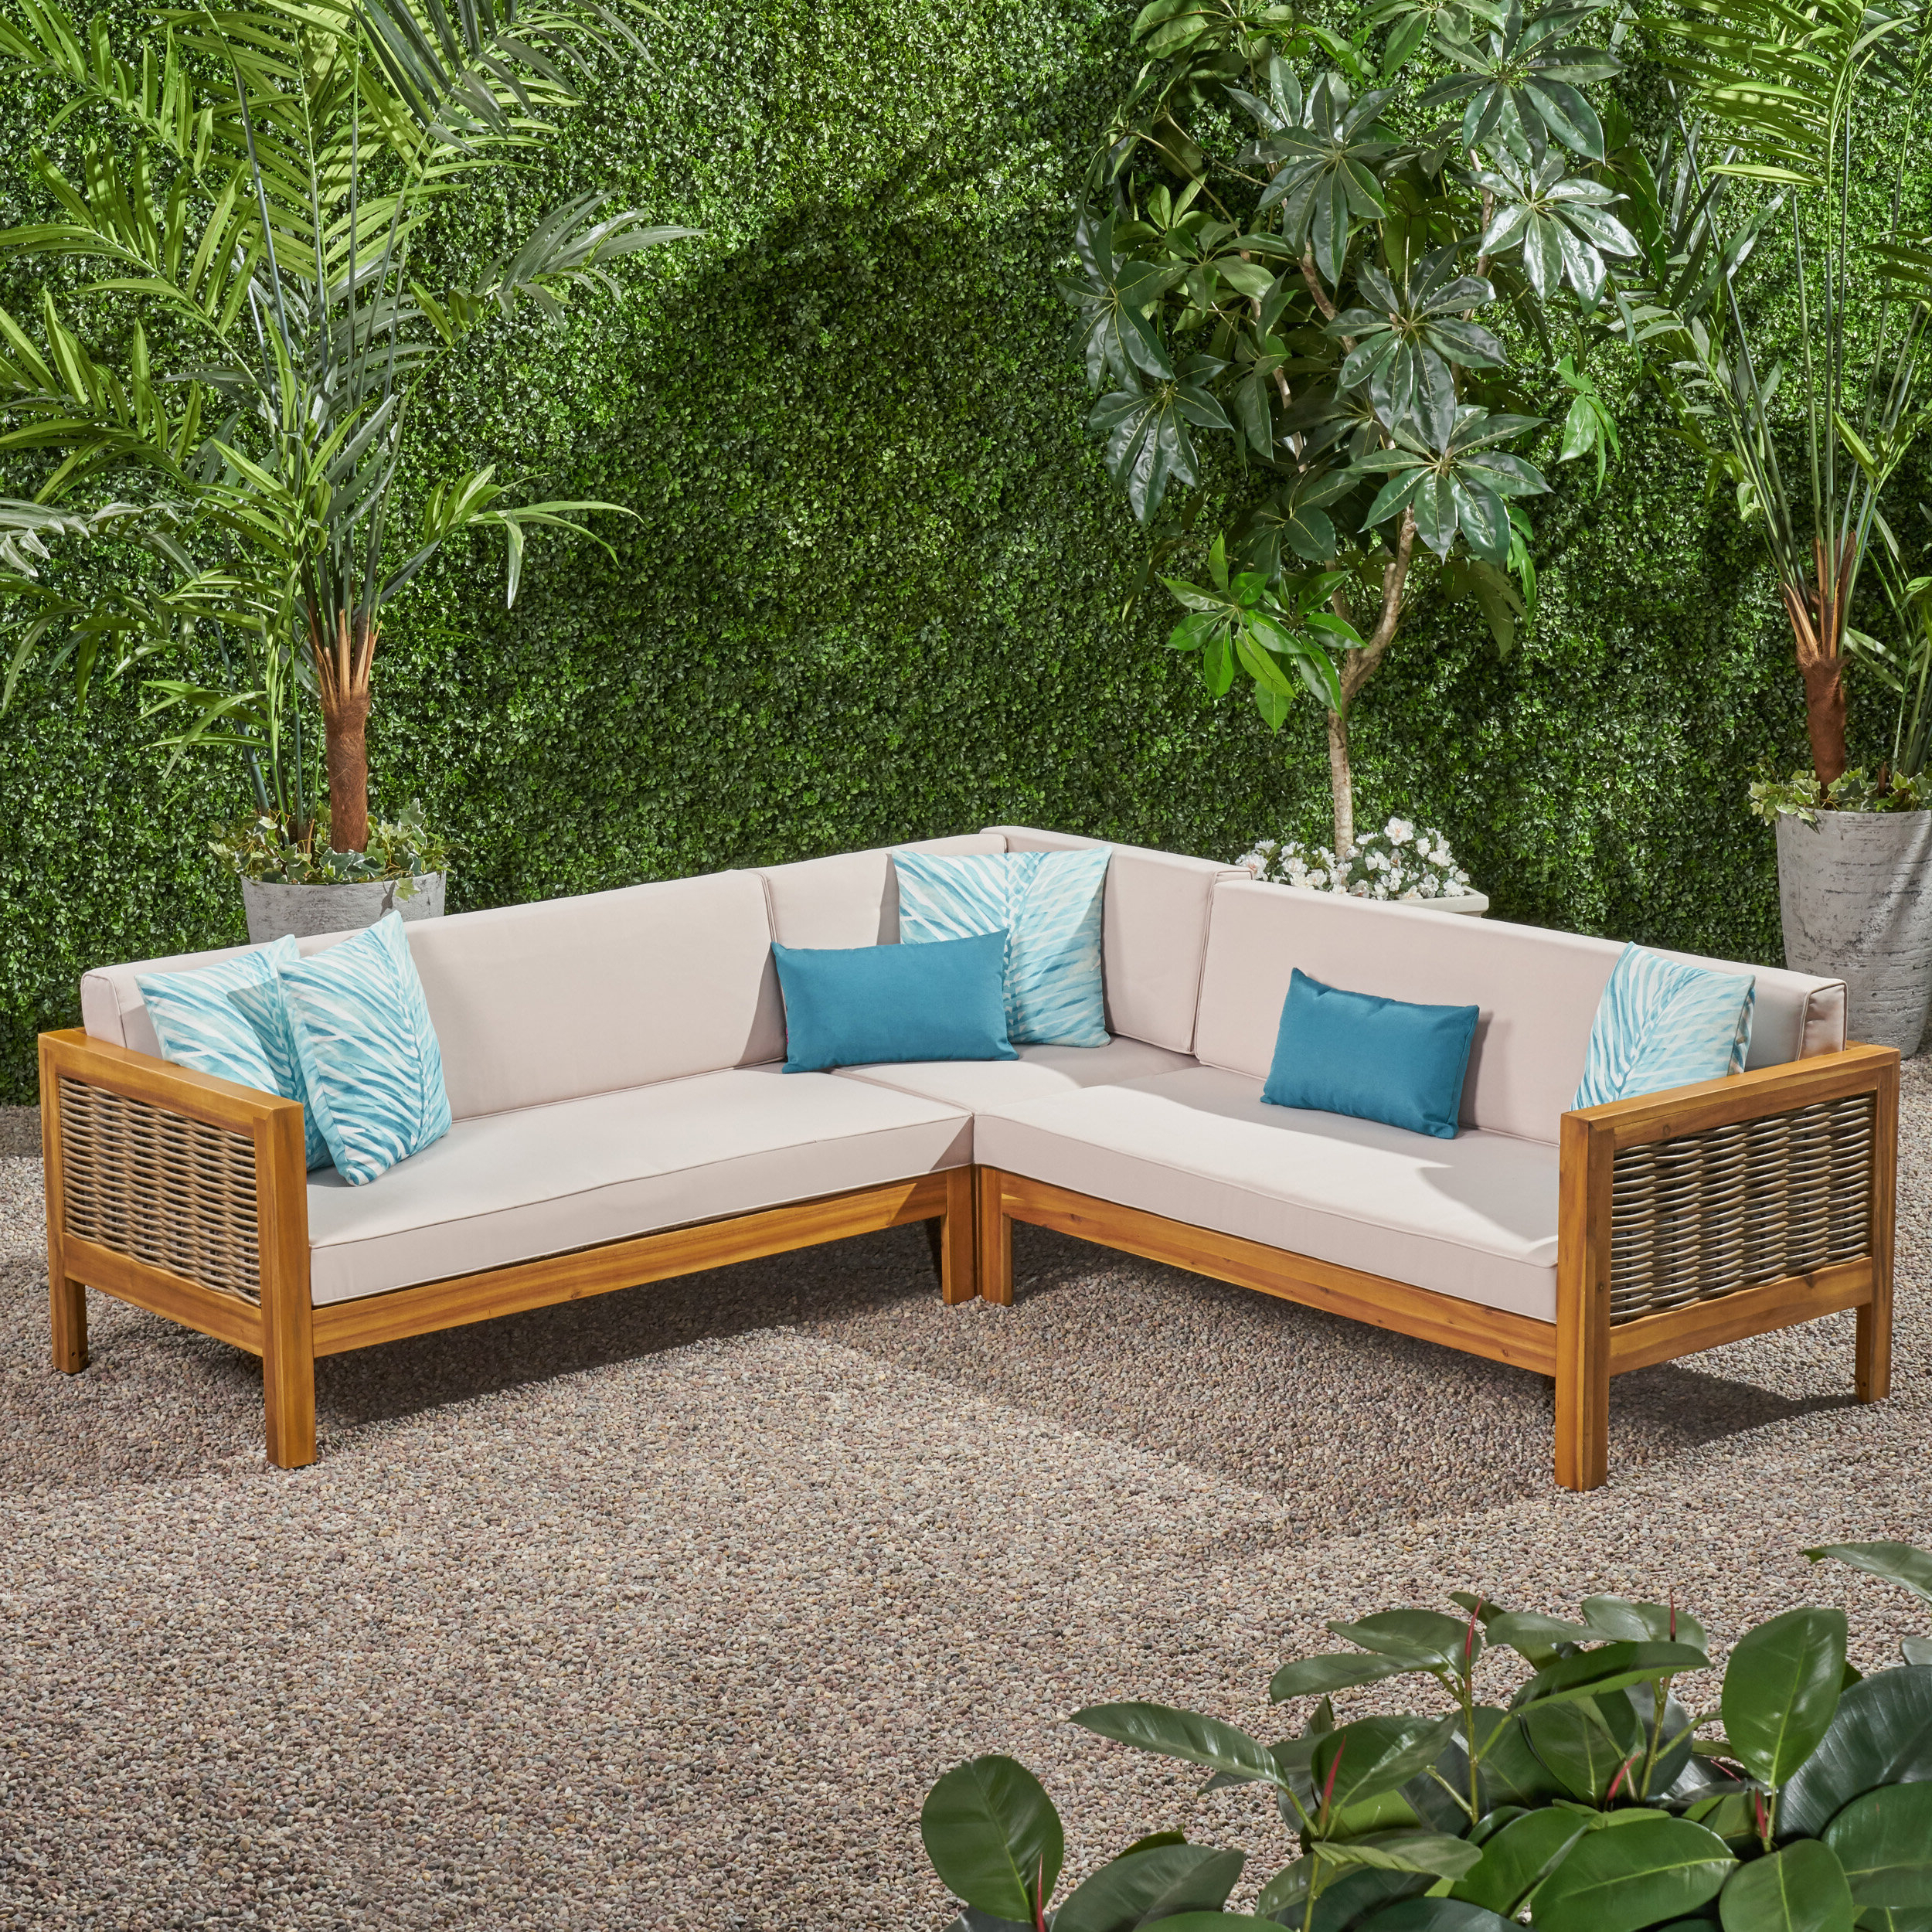 Antonia Teak Patio Sectionals With Cushions In Well Known Kennison Patio Sectional With Cushions (Gallery 19 of 25)